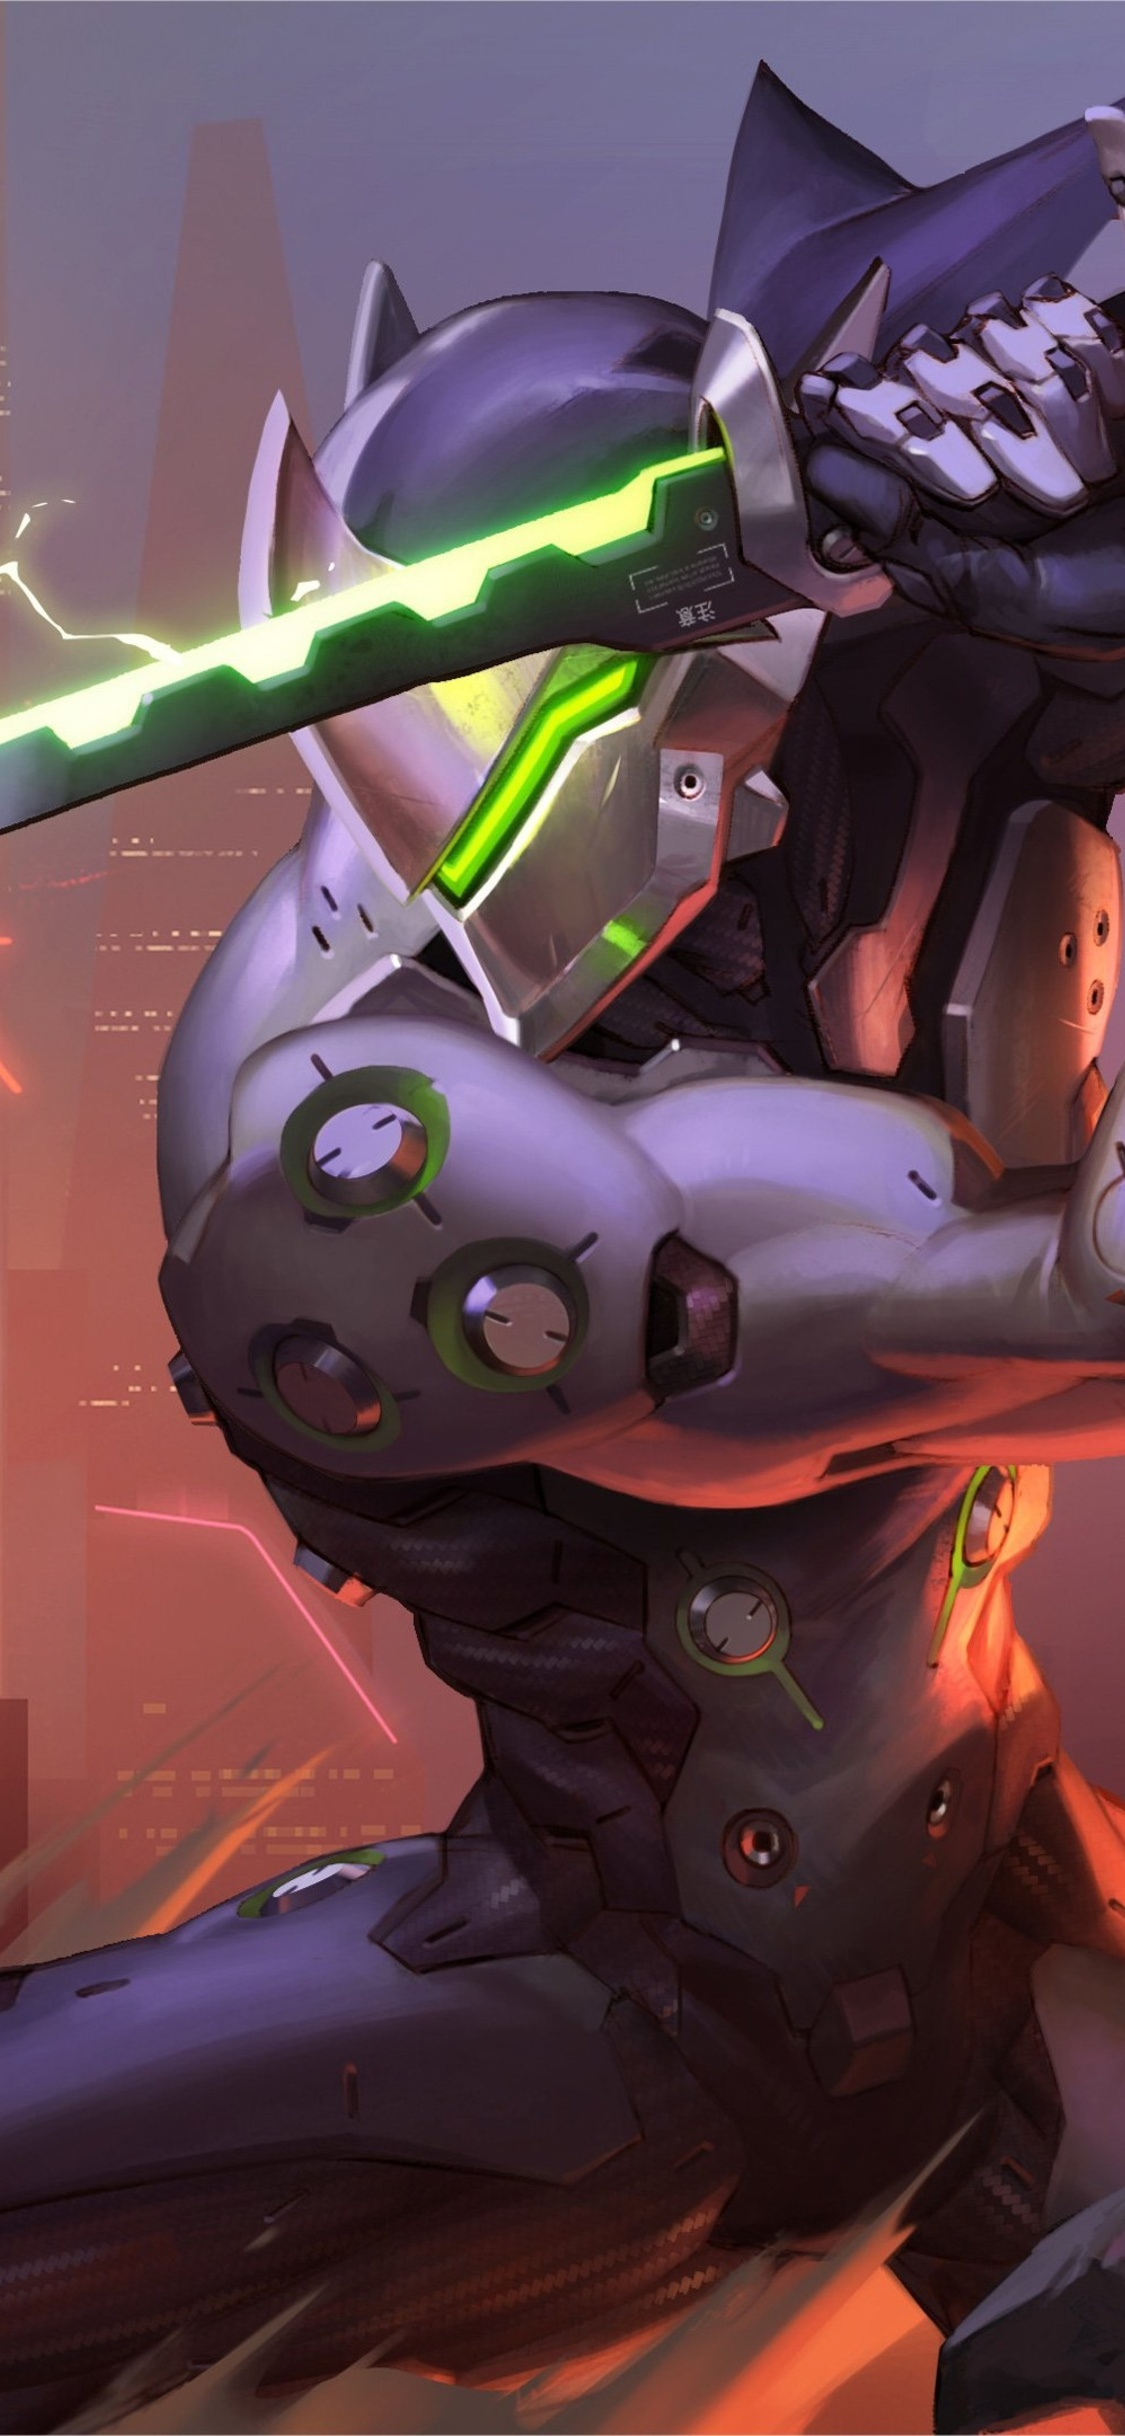 1125x2436 Genji Overwatch Video Game 4k Iphone Xs Iphone 10